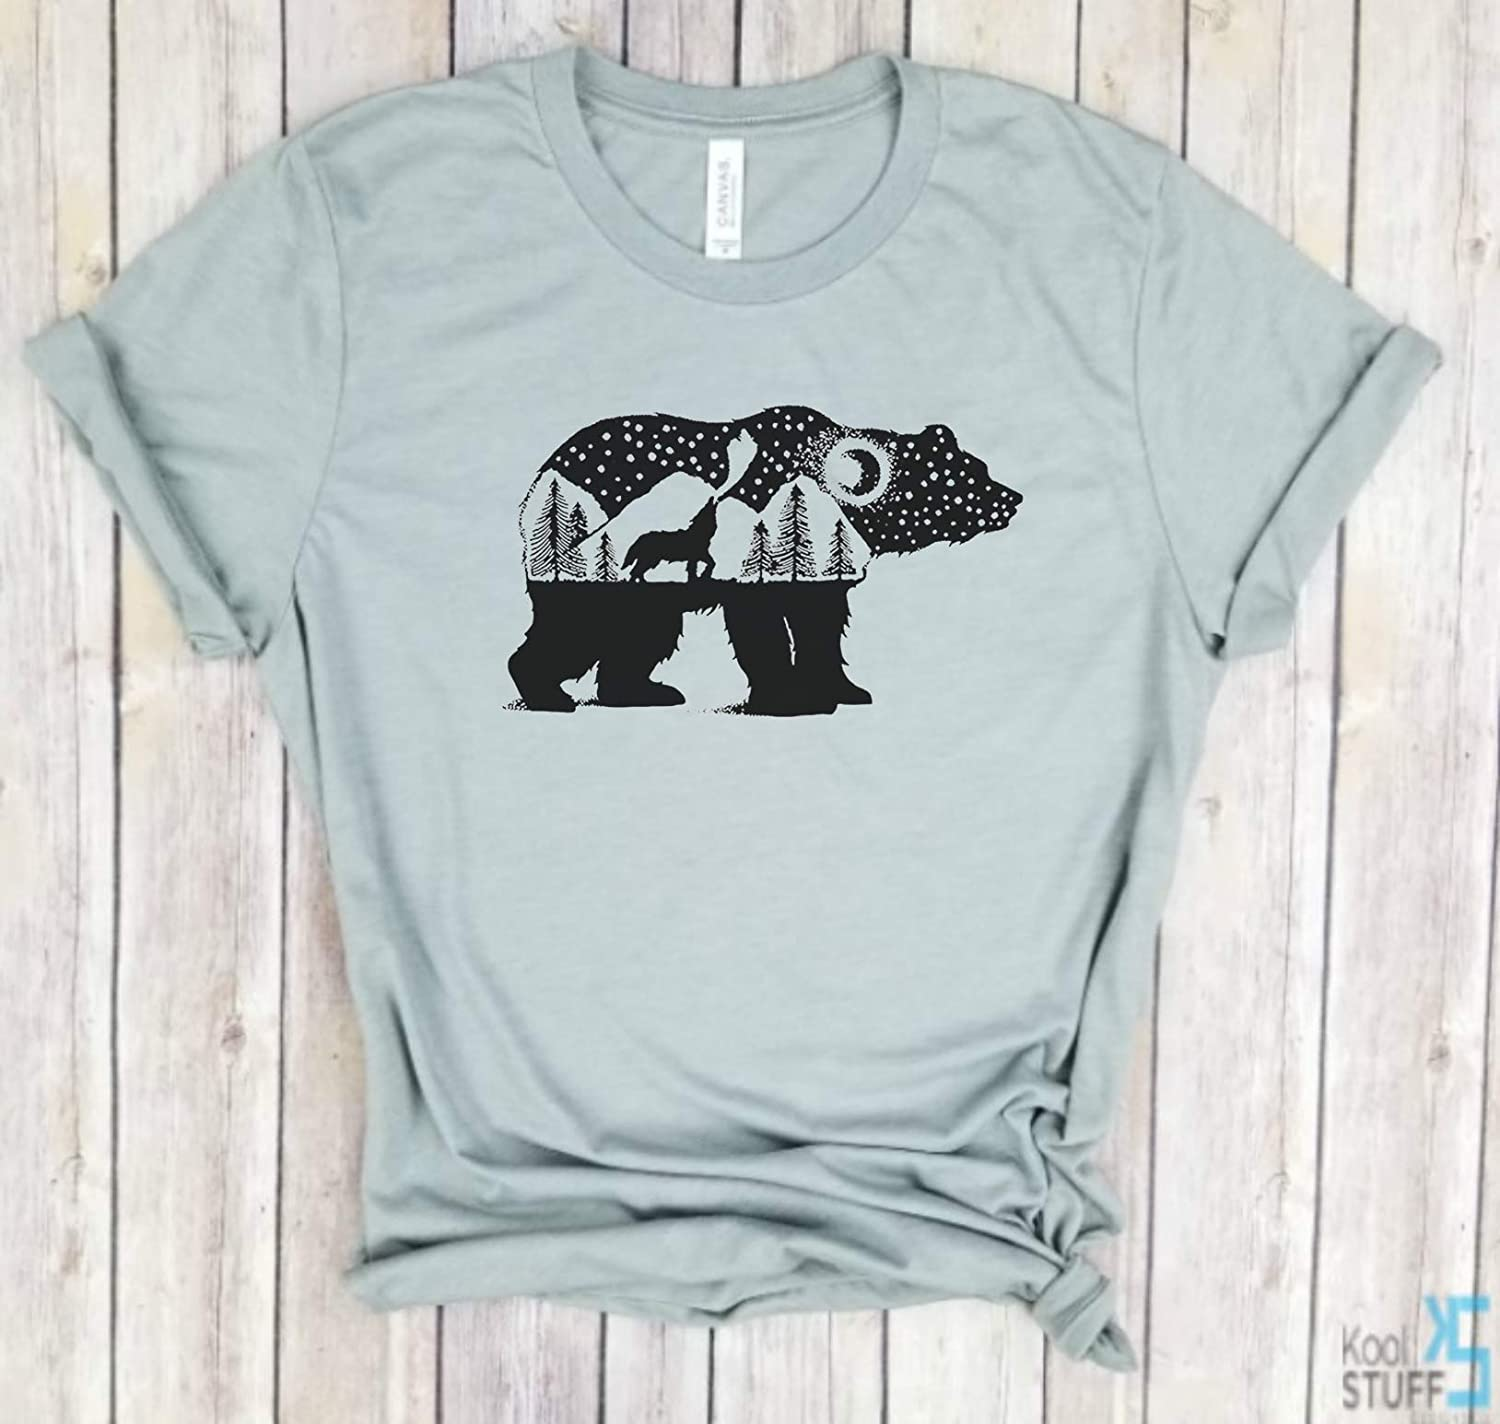 Bear and Wolf howling - Woods T-Shirt, Wild bear, Adventure Camping Journey Trees, National Park, Nature, Outdoors, Wilderness Tee.